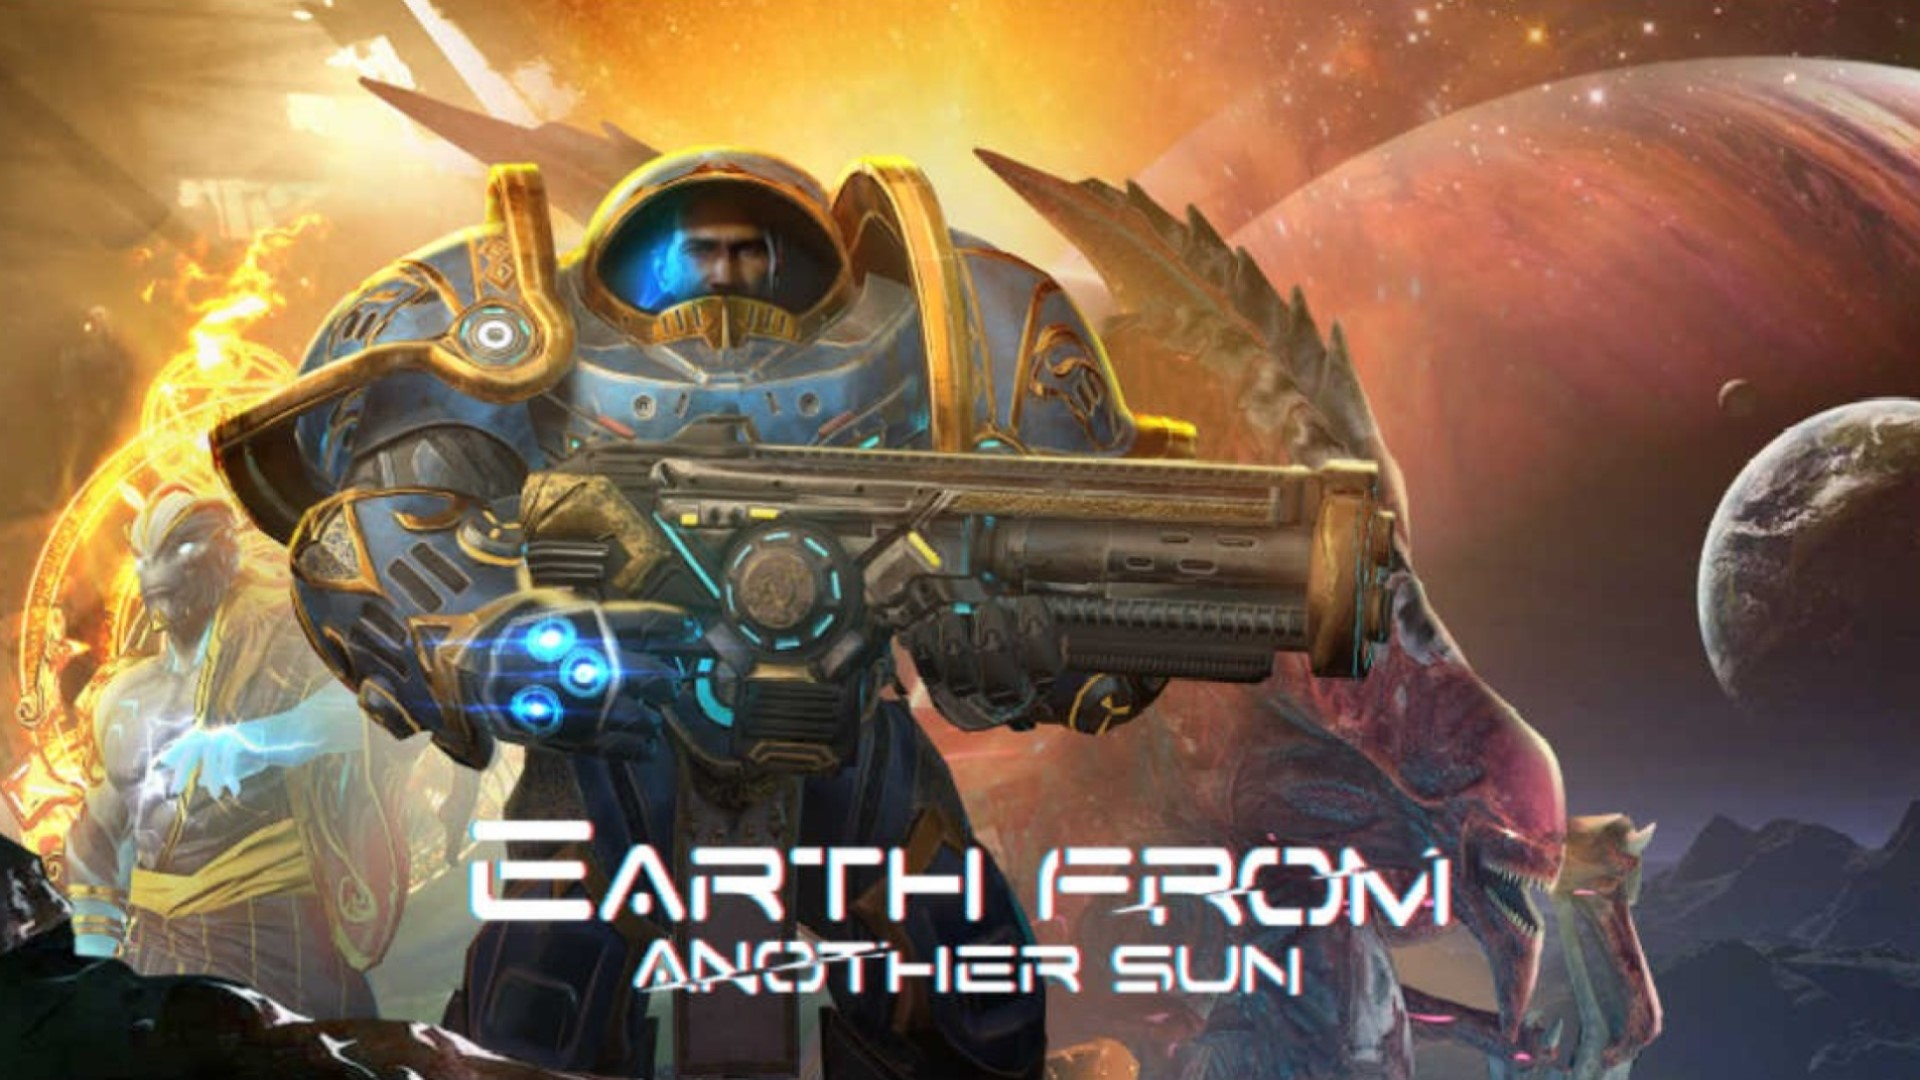 Multiverse Reveals Earth from another sun!